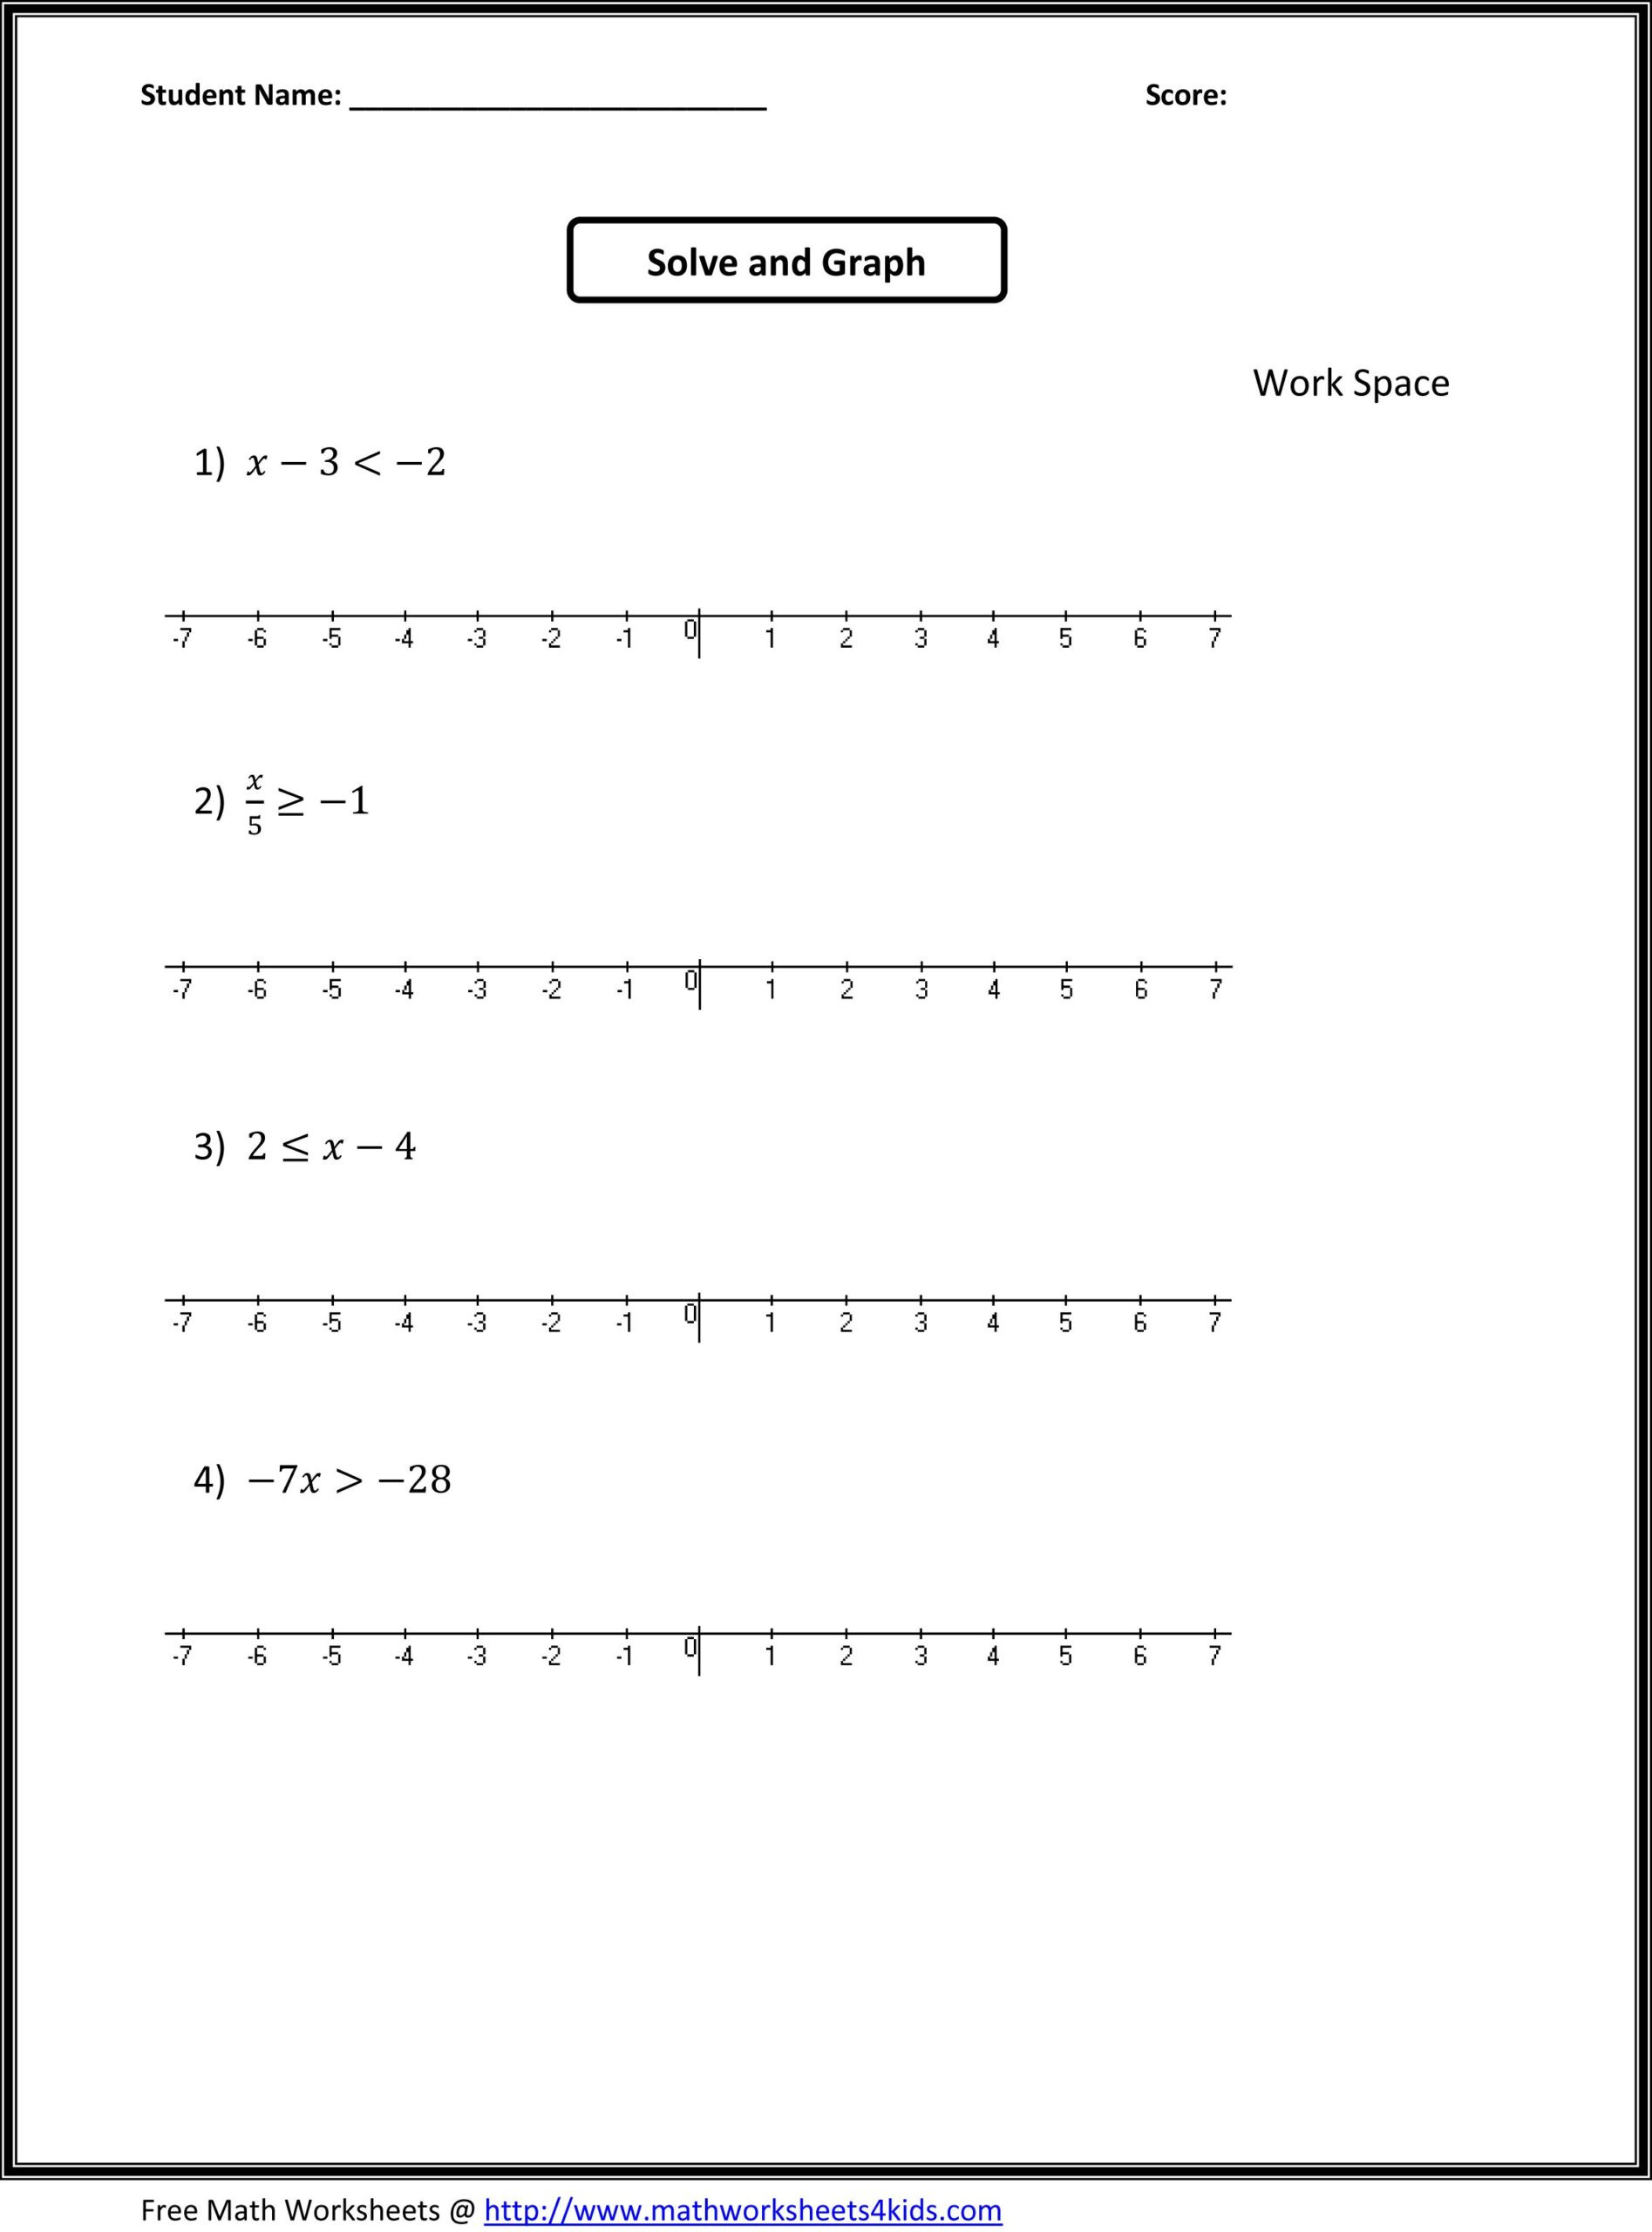 Coordinate Plane Worksheets 5th Grade Fun Worksheets for Elementary Students Coordinate Plane